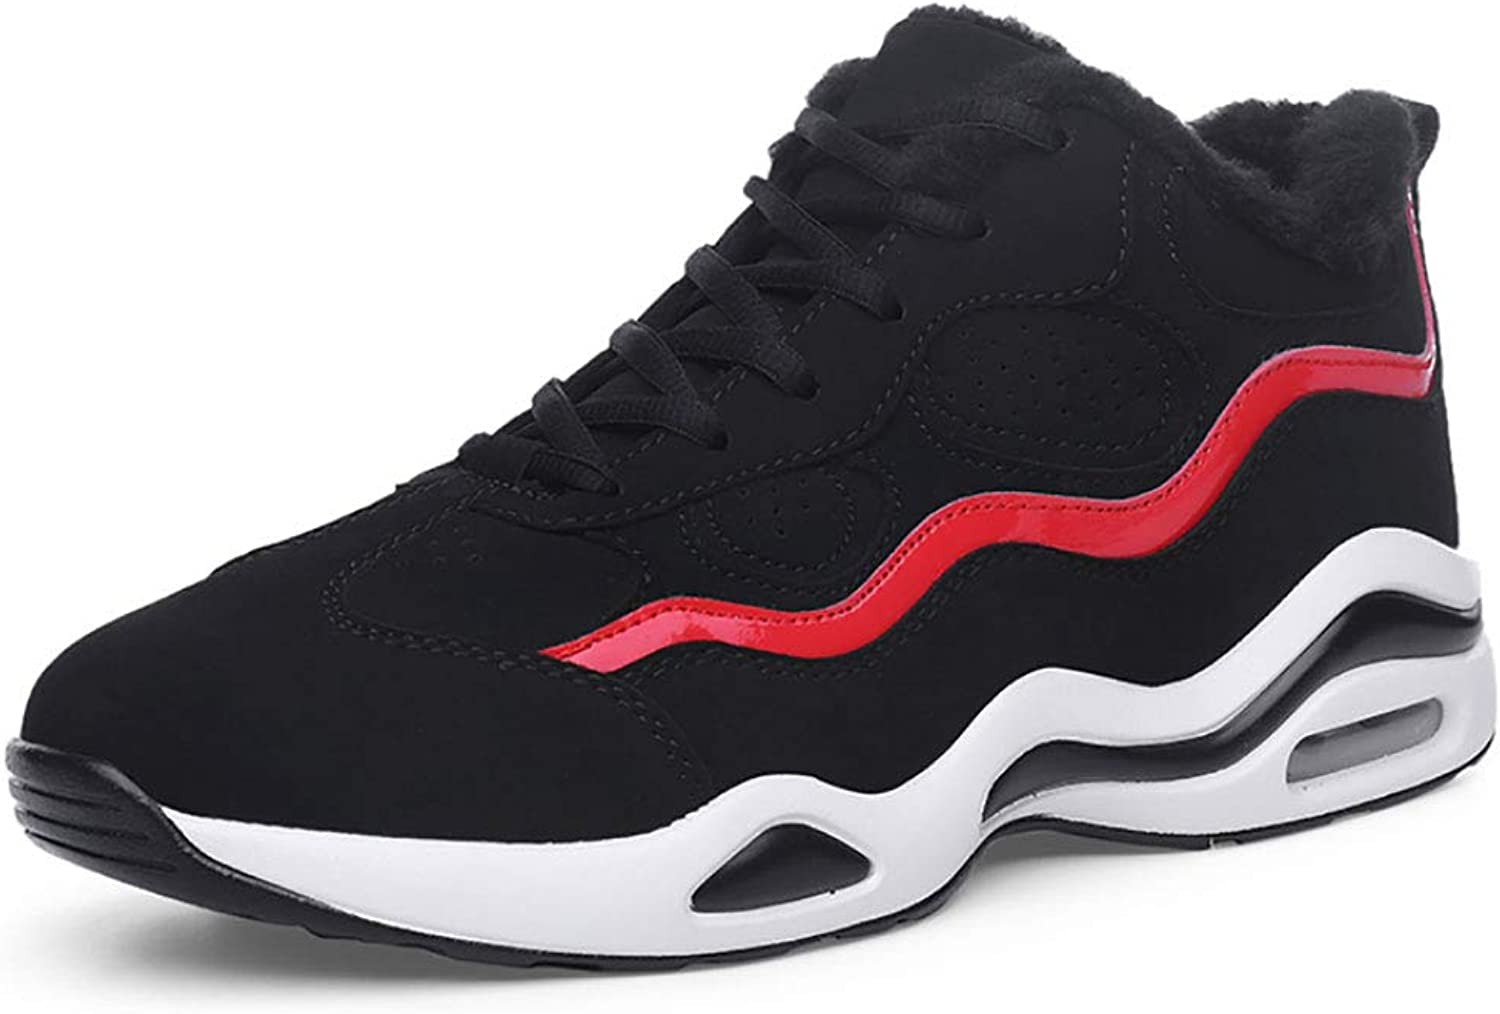 Sports shoes, Boys, Warm Students, Leisure, Air Cushions, Basketball shoes, Men's Cotton shoes and Black shoes.